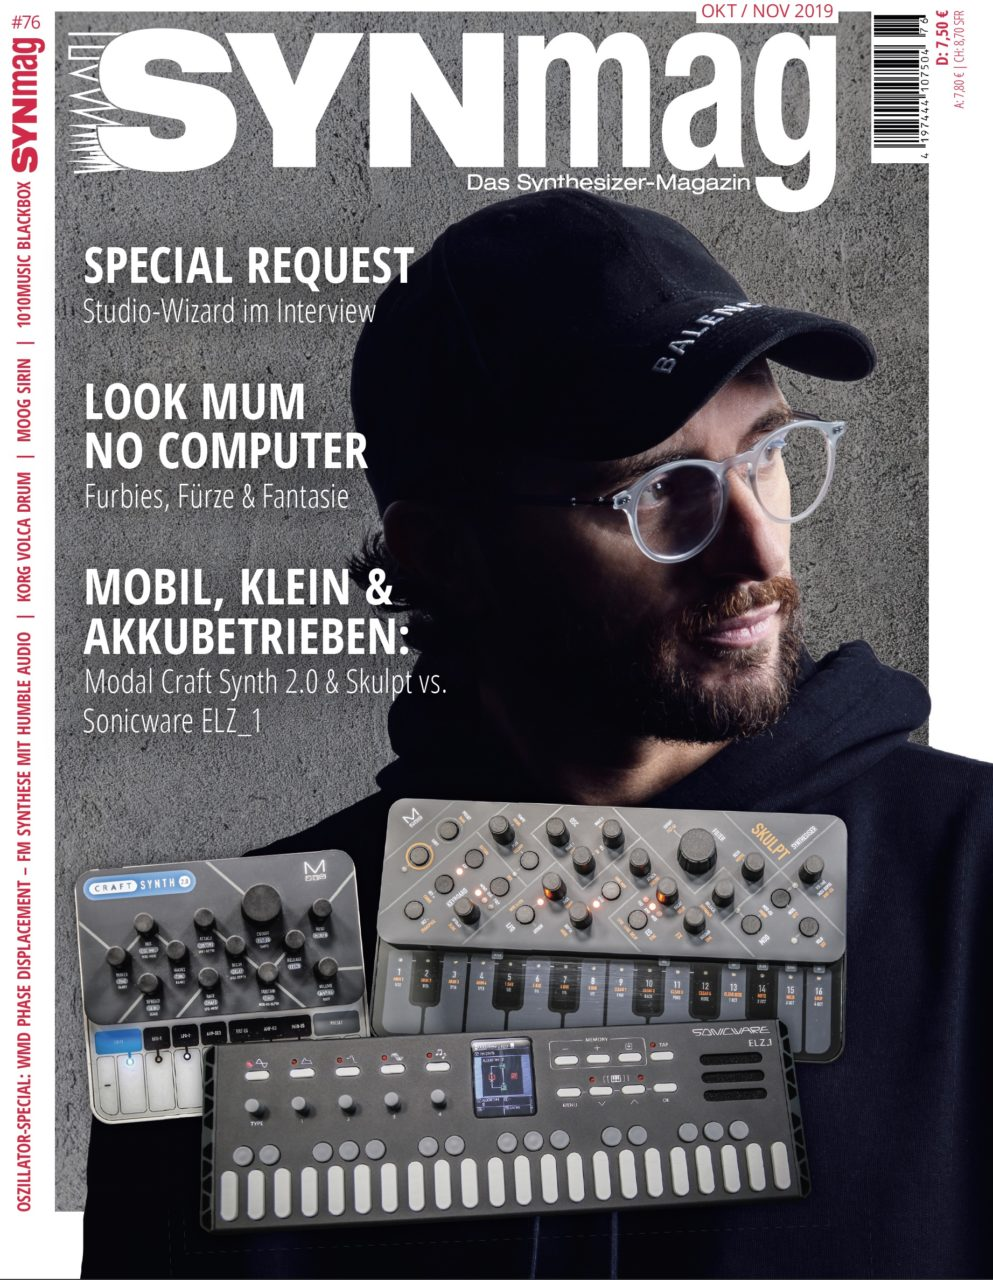 SynMag 76 - Das Synthesizer-Magazin